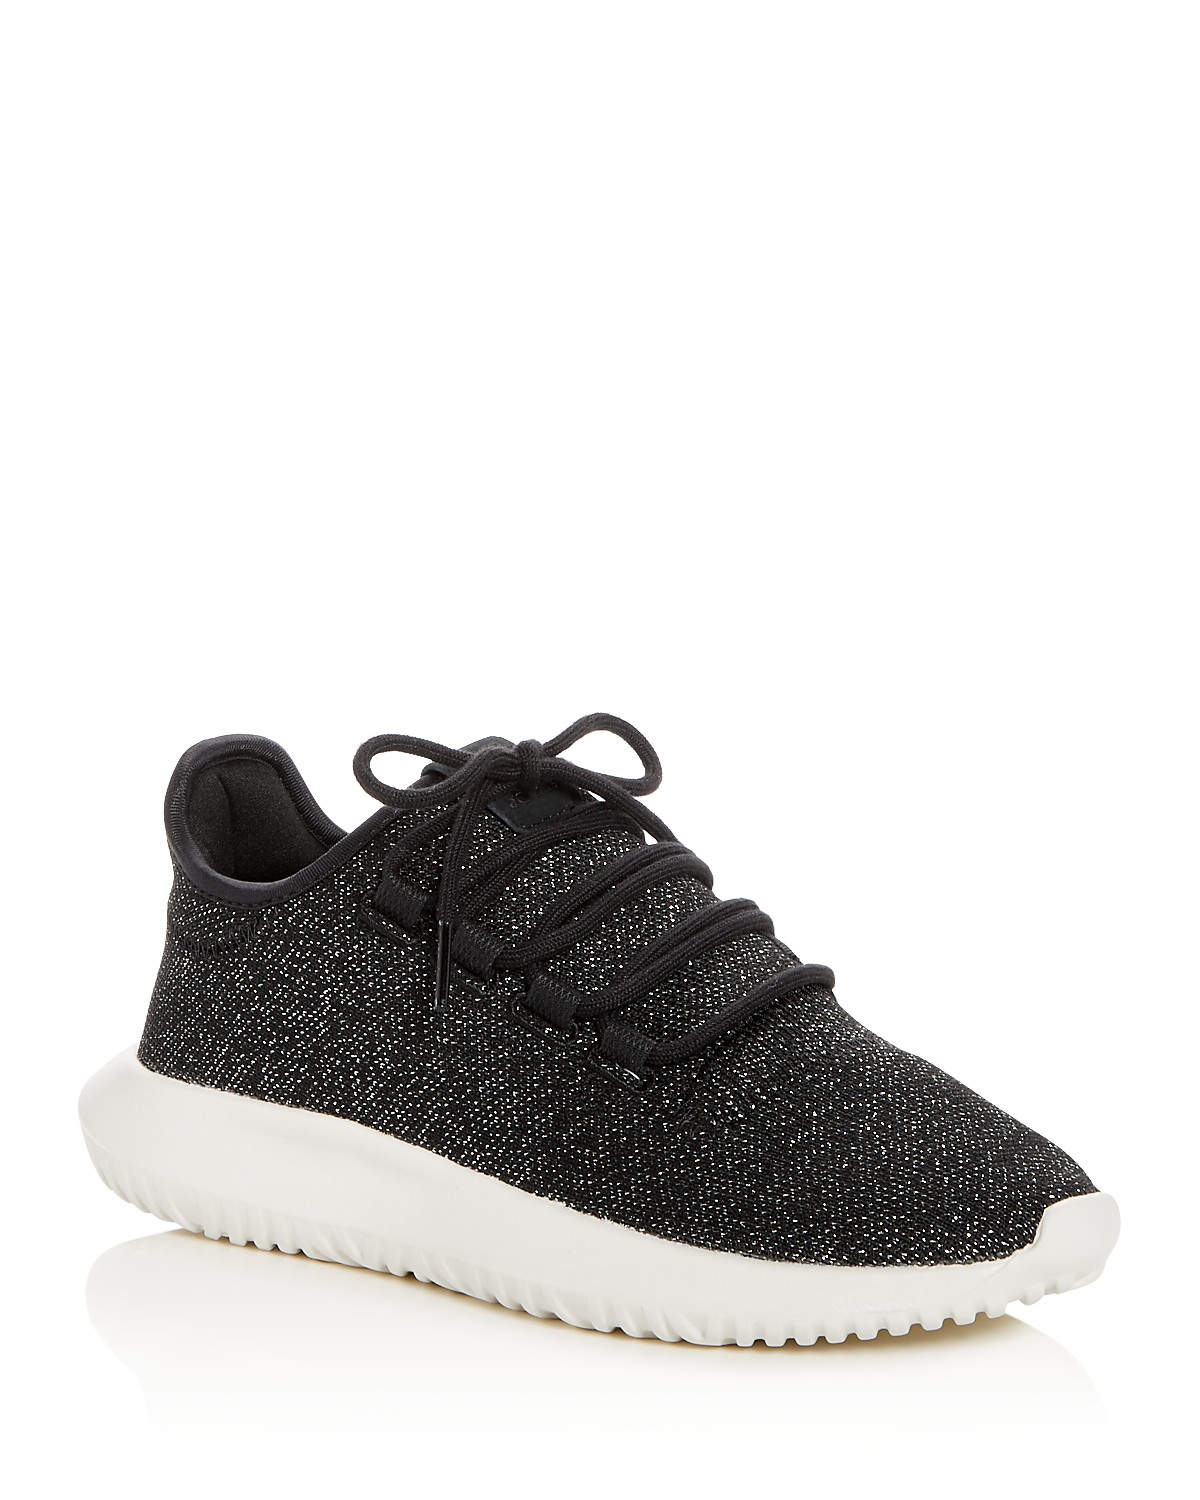 Sale - Tubular Shadow Lace-Up Trainers - Adidas adidas Shopping Online Cheap Online Rf4jyQV4